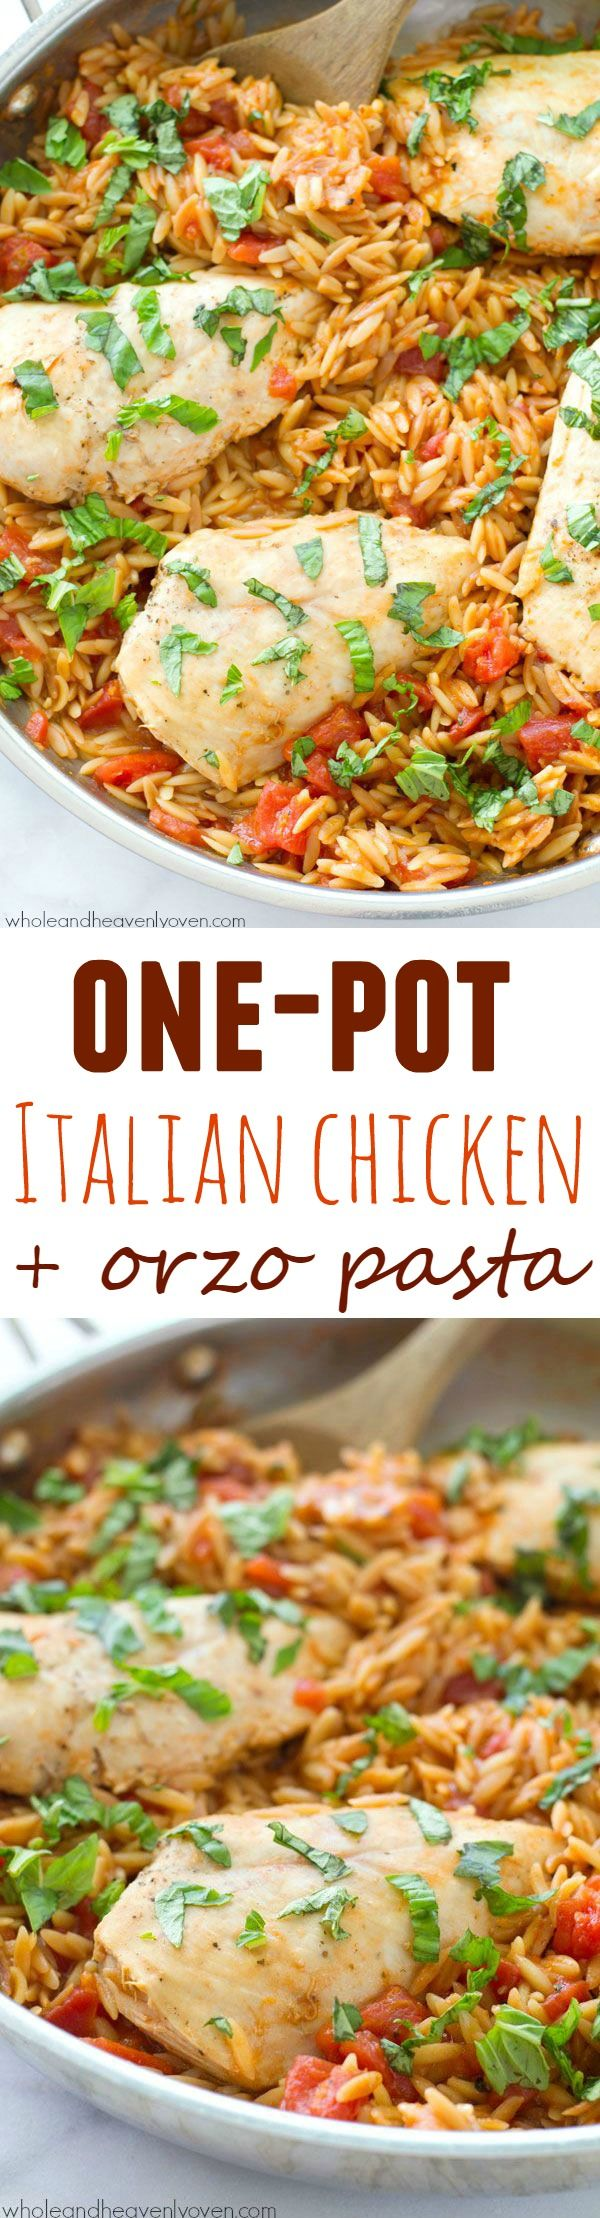 Zo S Kitchen Chicken Orzo one-pot italian chicken and orzo pasta | recipe | italian style